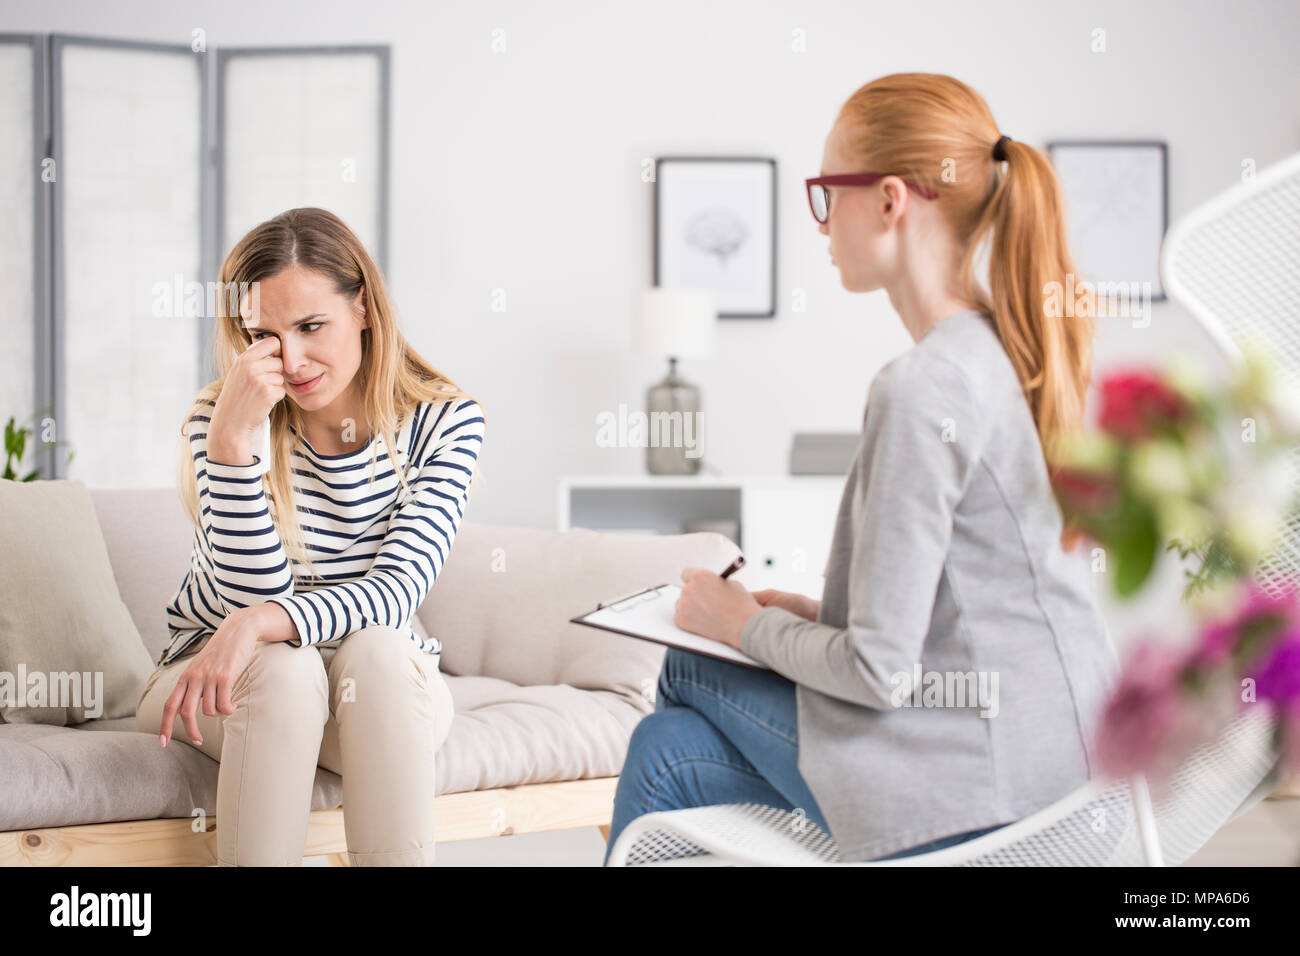 Unhappy woman suffering from depression crying during session at psychologist's office - Stock Image